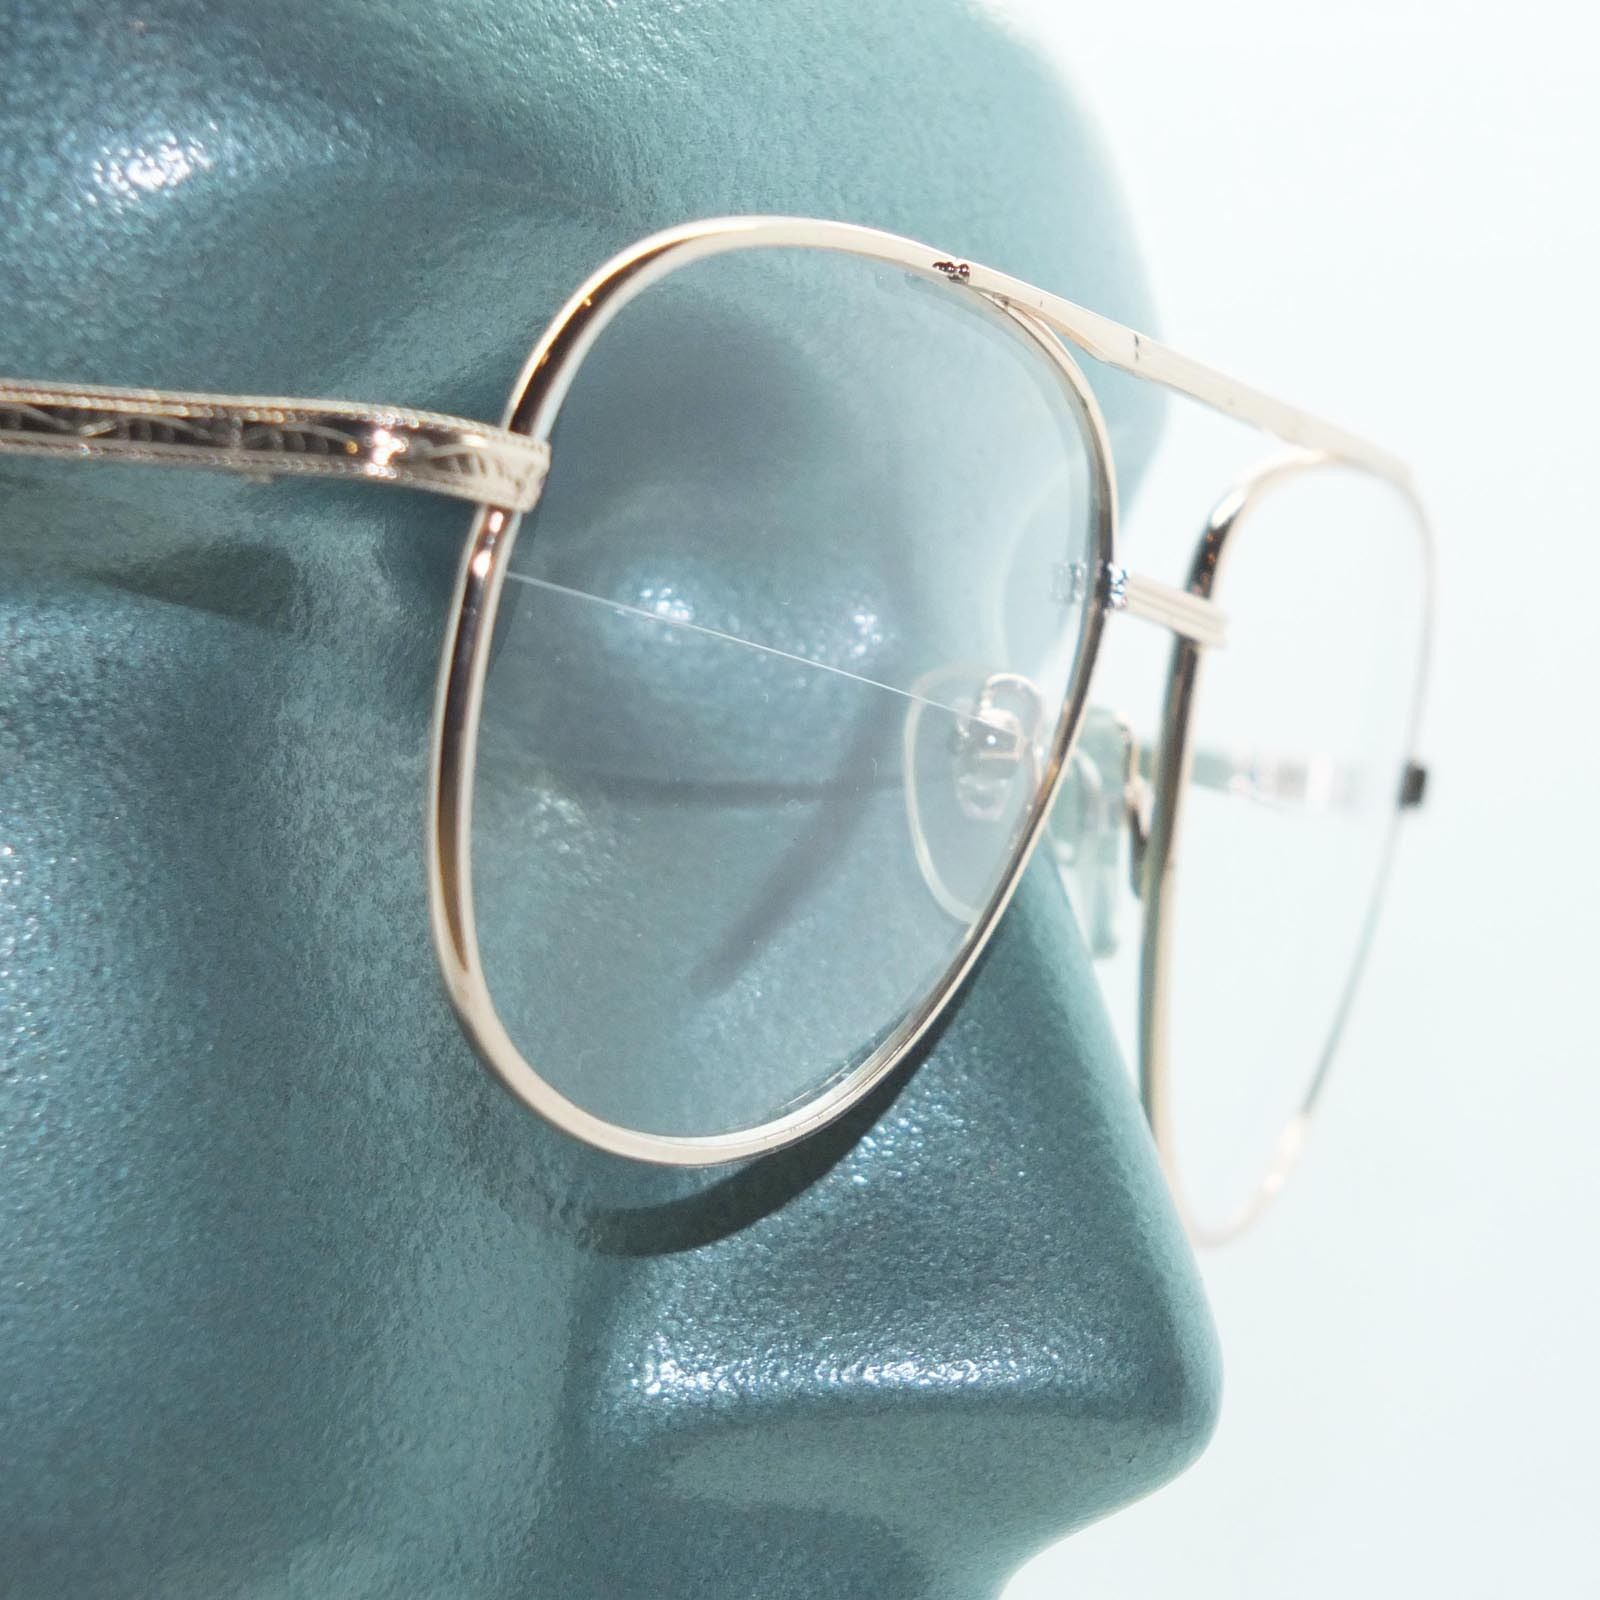 Primary image for Reading Glasses Large Man Modern Aviator Straight Bifocal Gold Metal Frame +3.00